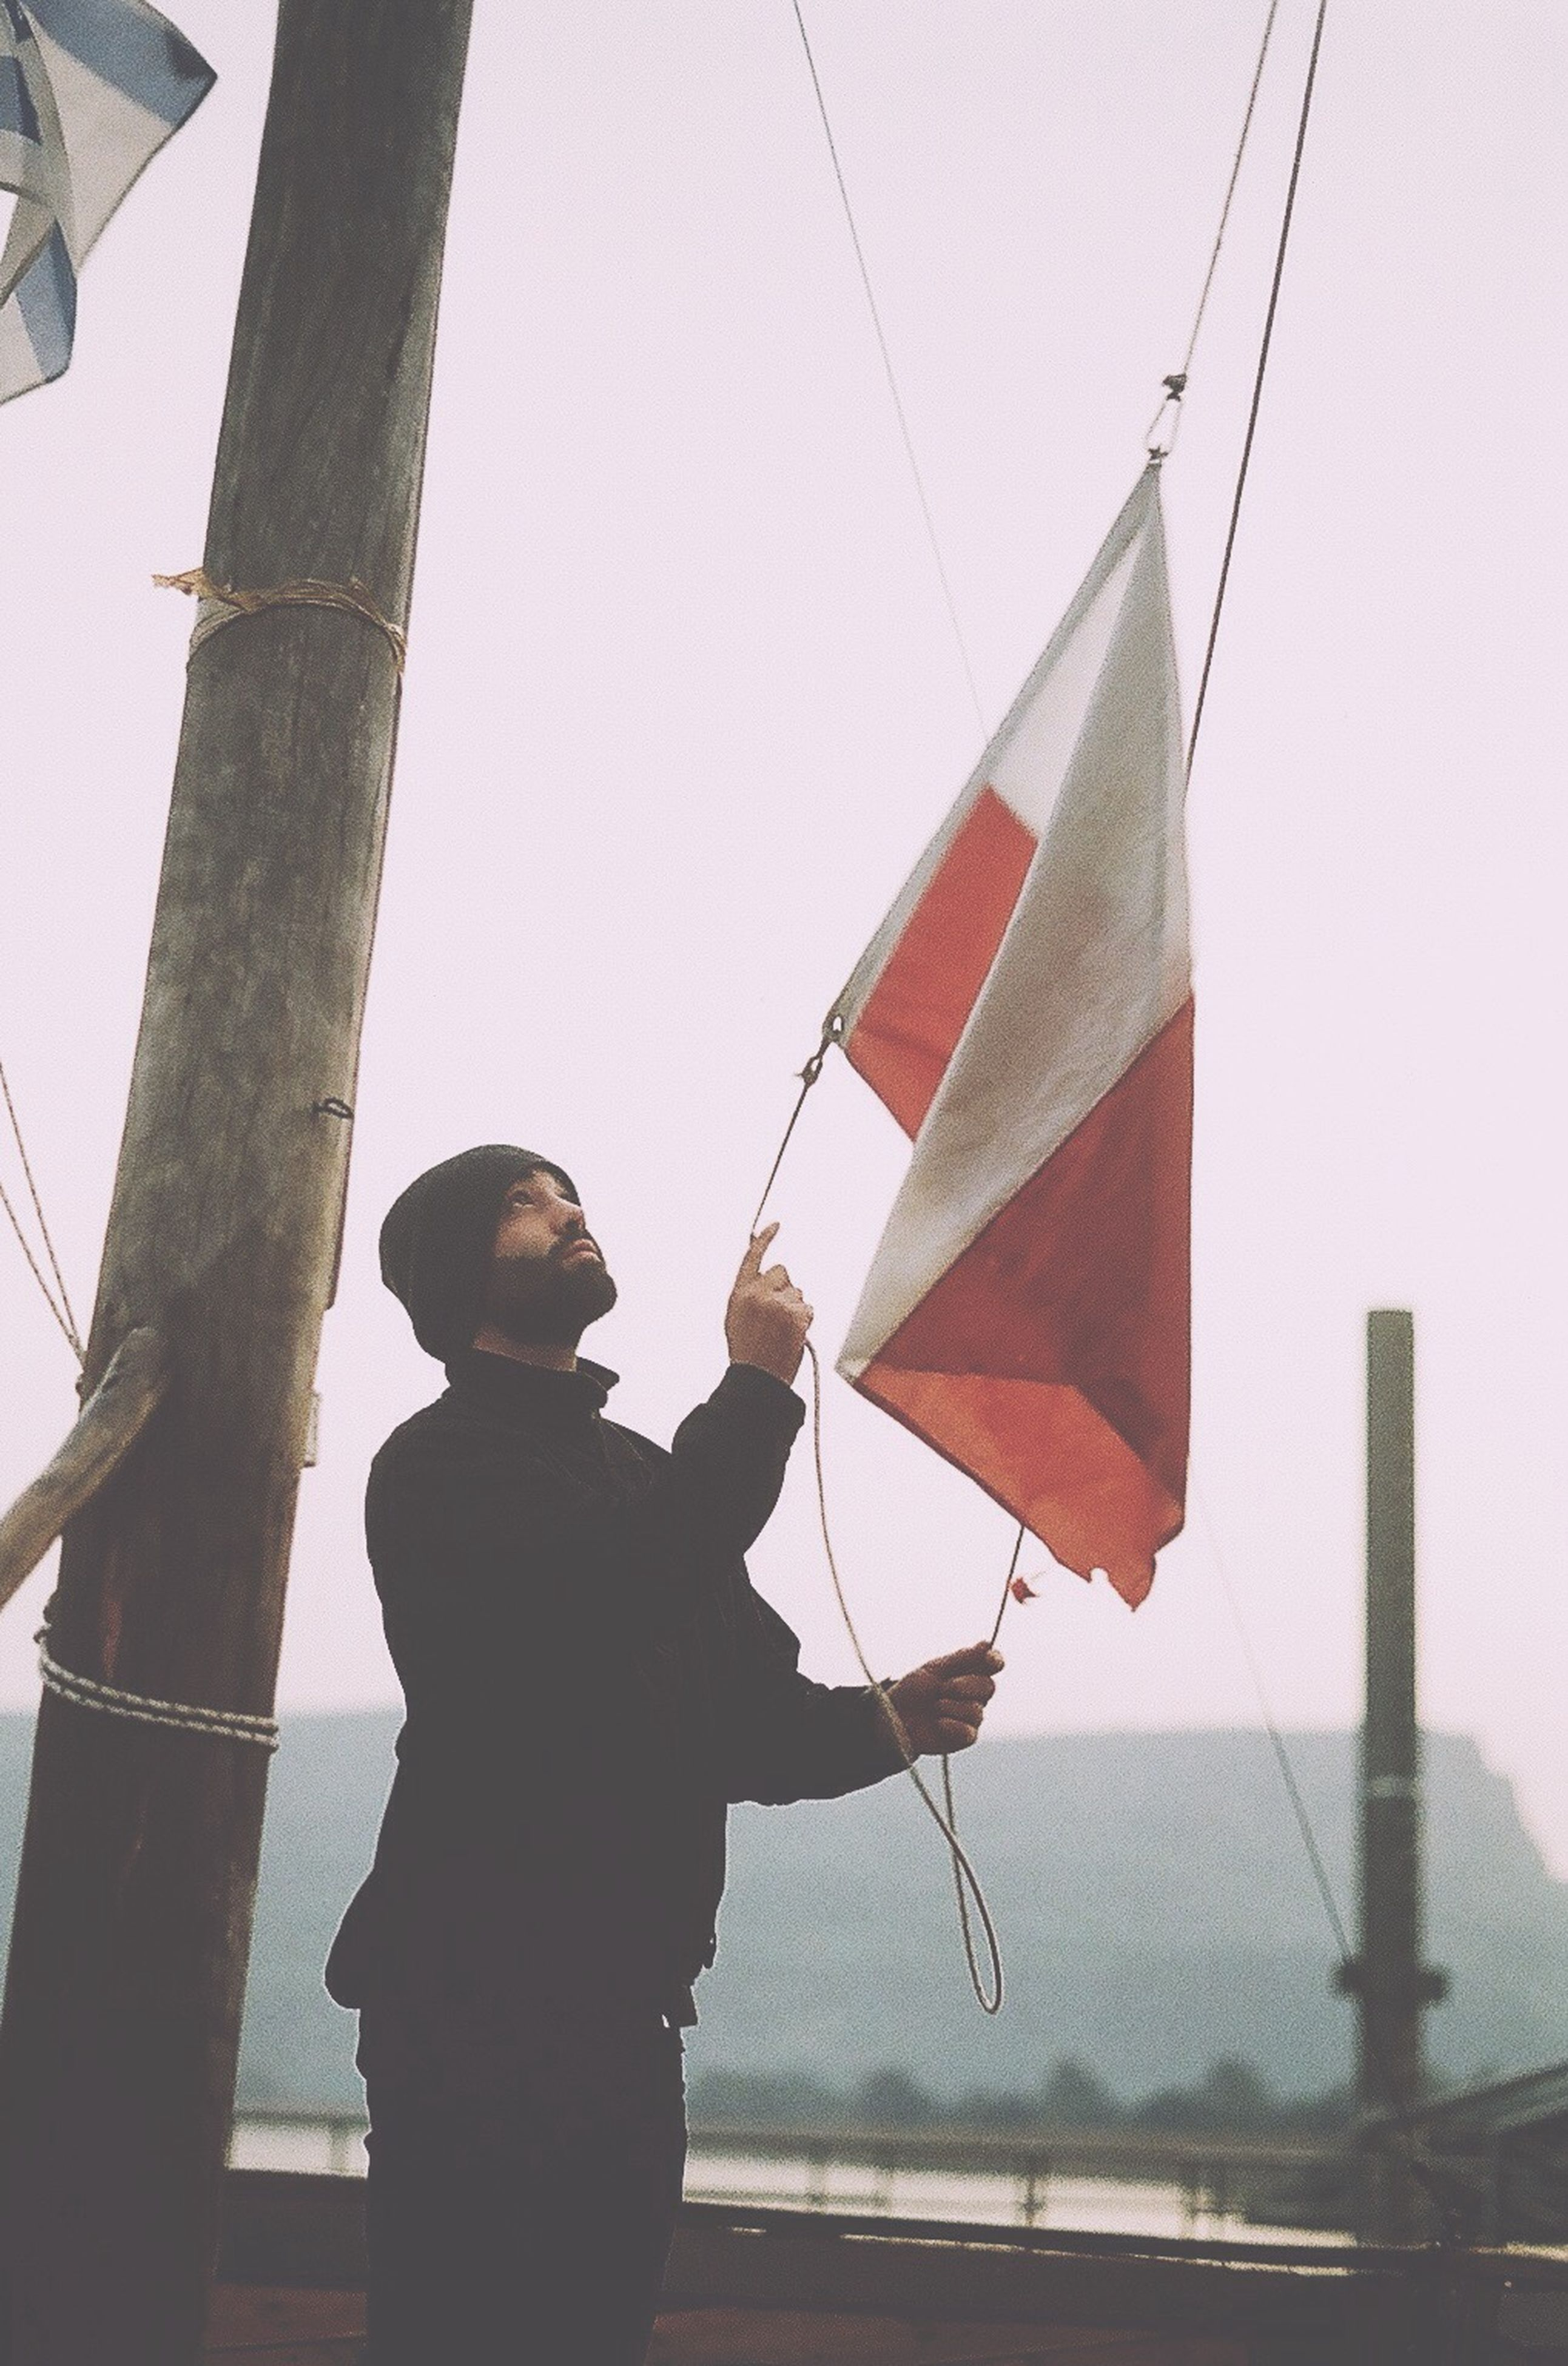 holding, one person, flag, one man only, adults only, standing, day, patriotism, people, real people, outdoors, adult, only men, men, sky